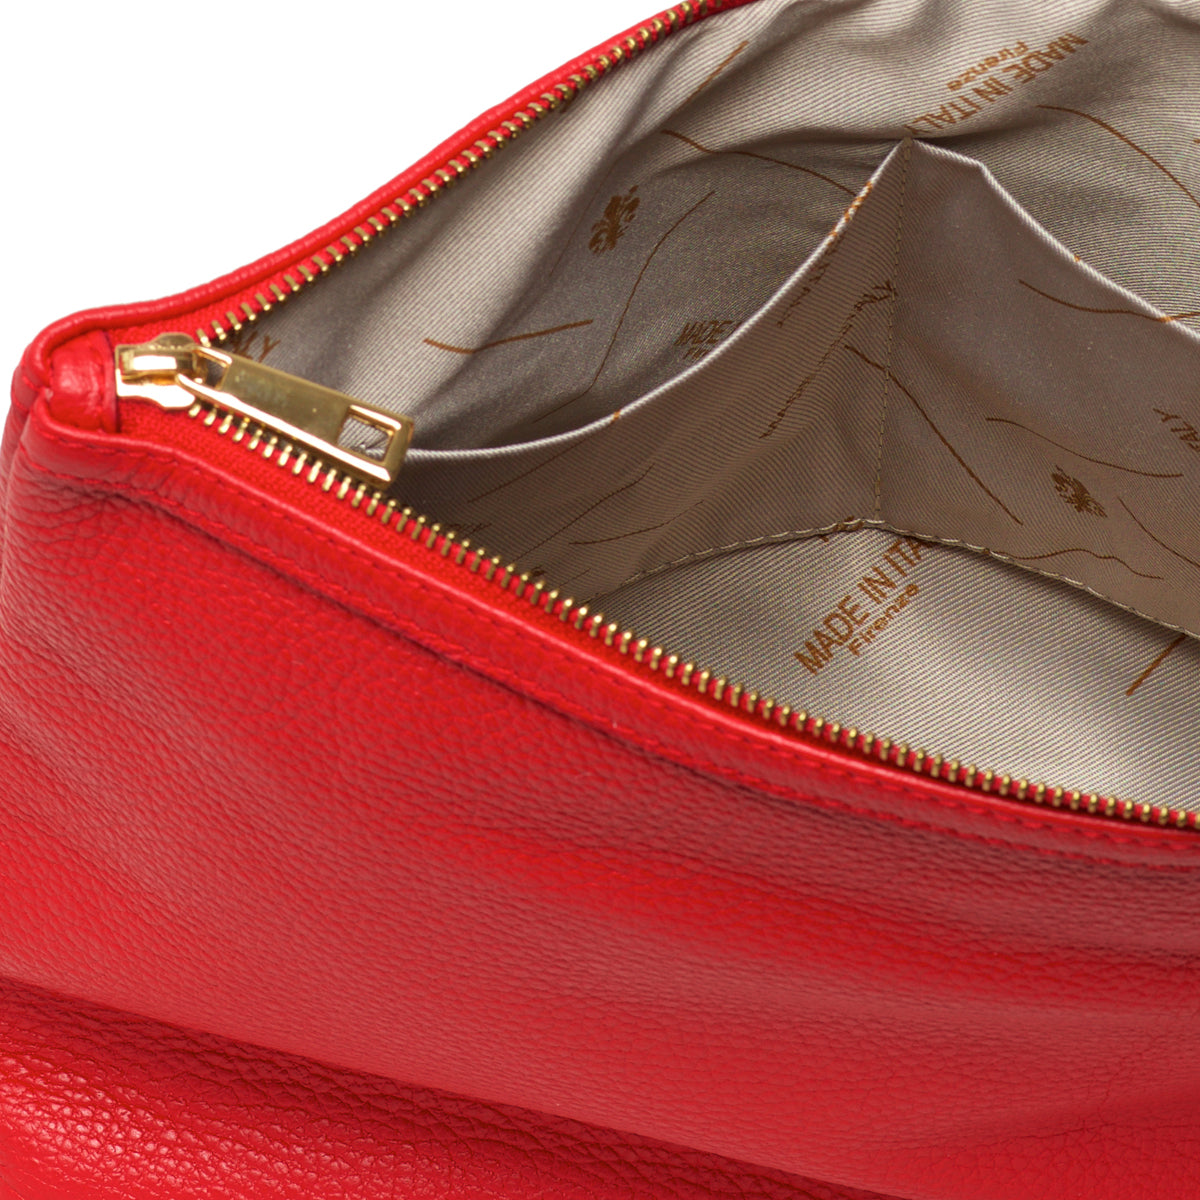 Melita Red - Cosmetic bag / Clutch Bag